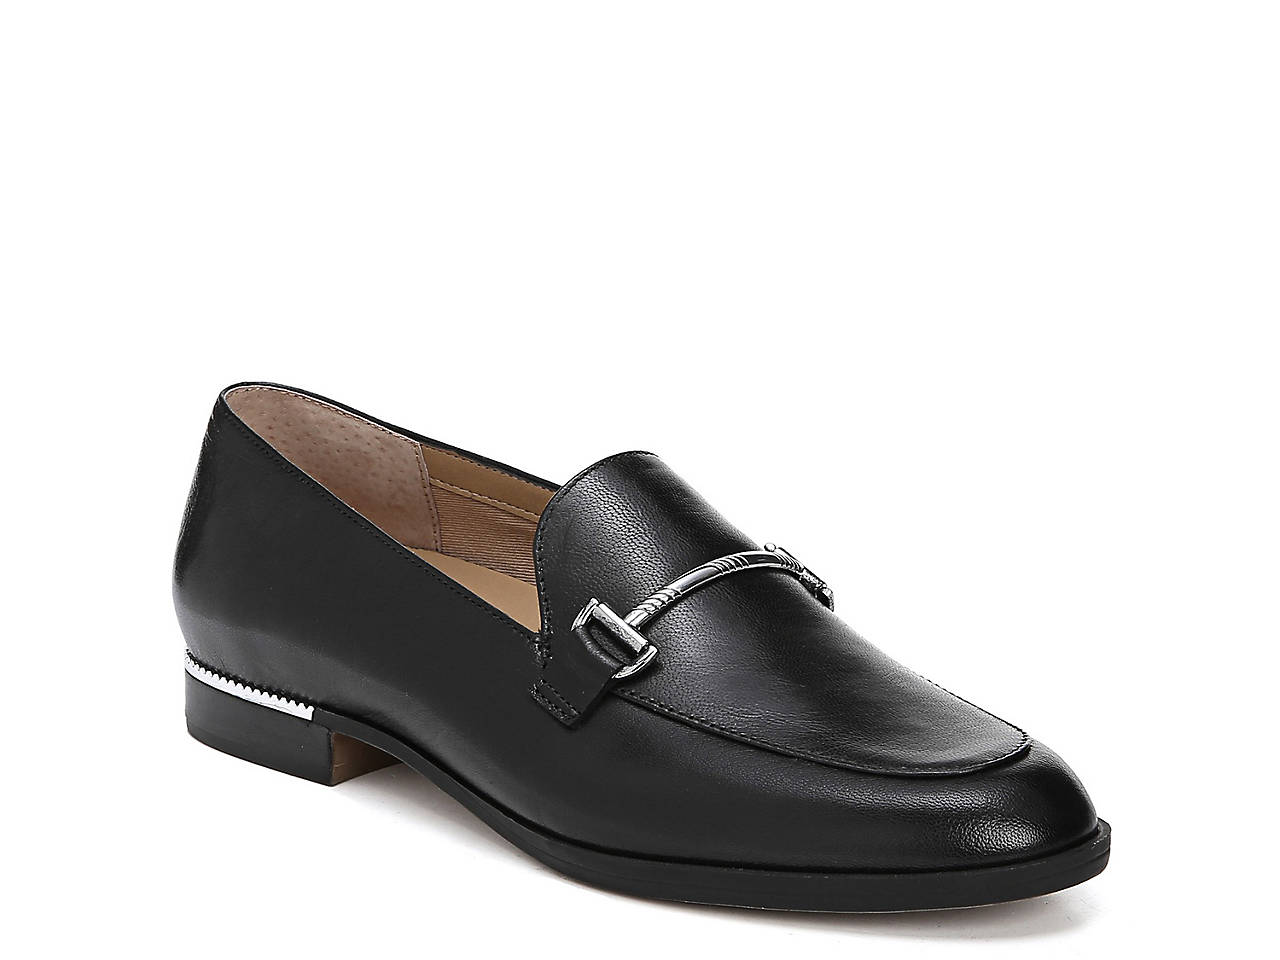 fd35d6daaf8 Franco Sarto Amie Loafer Women s Shoes